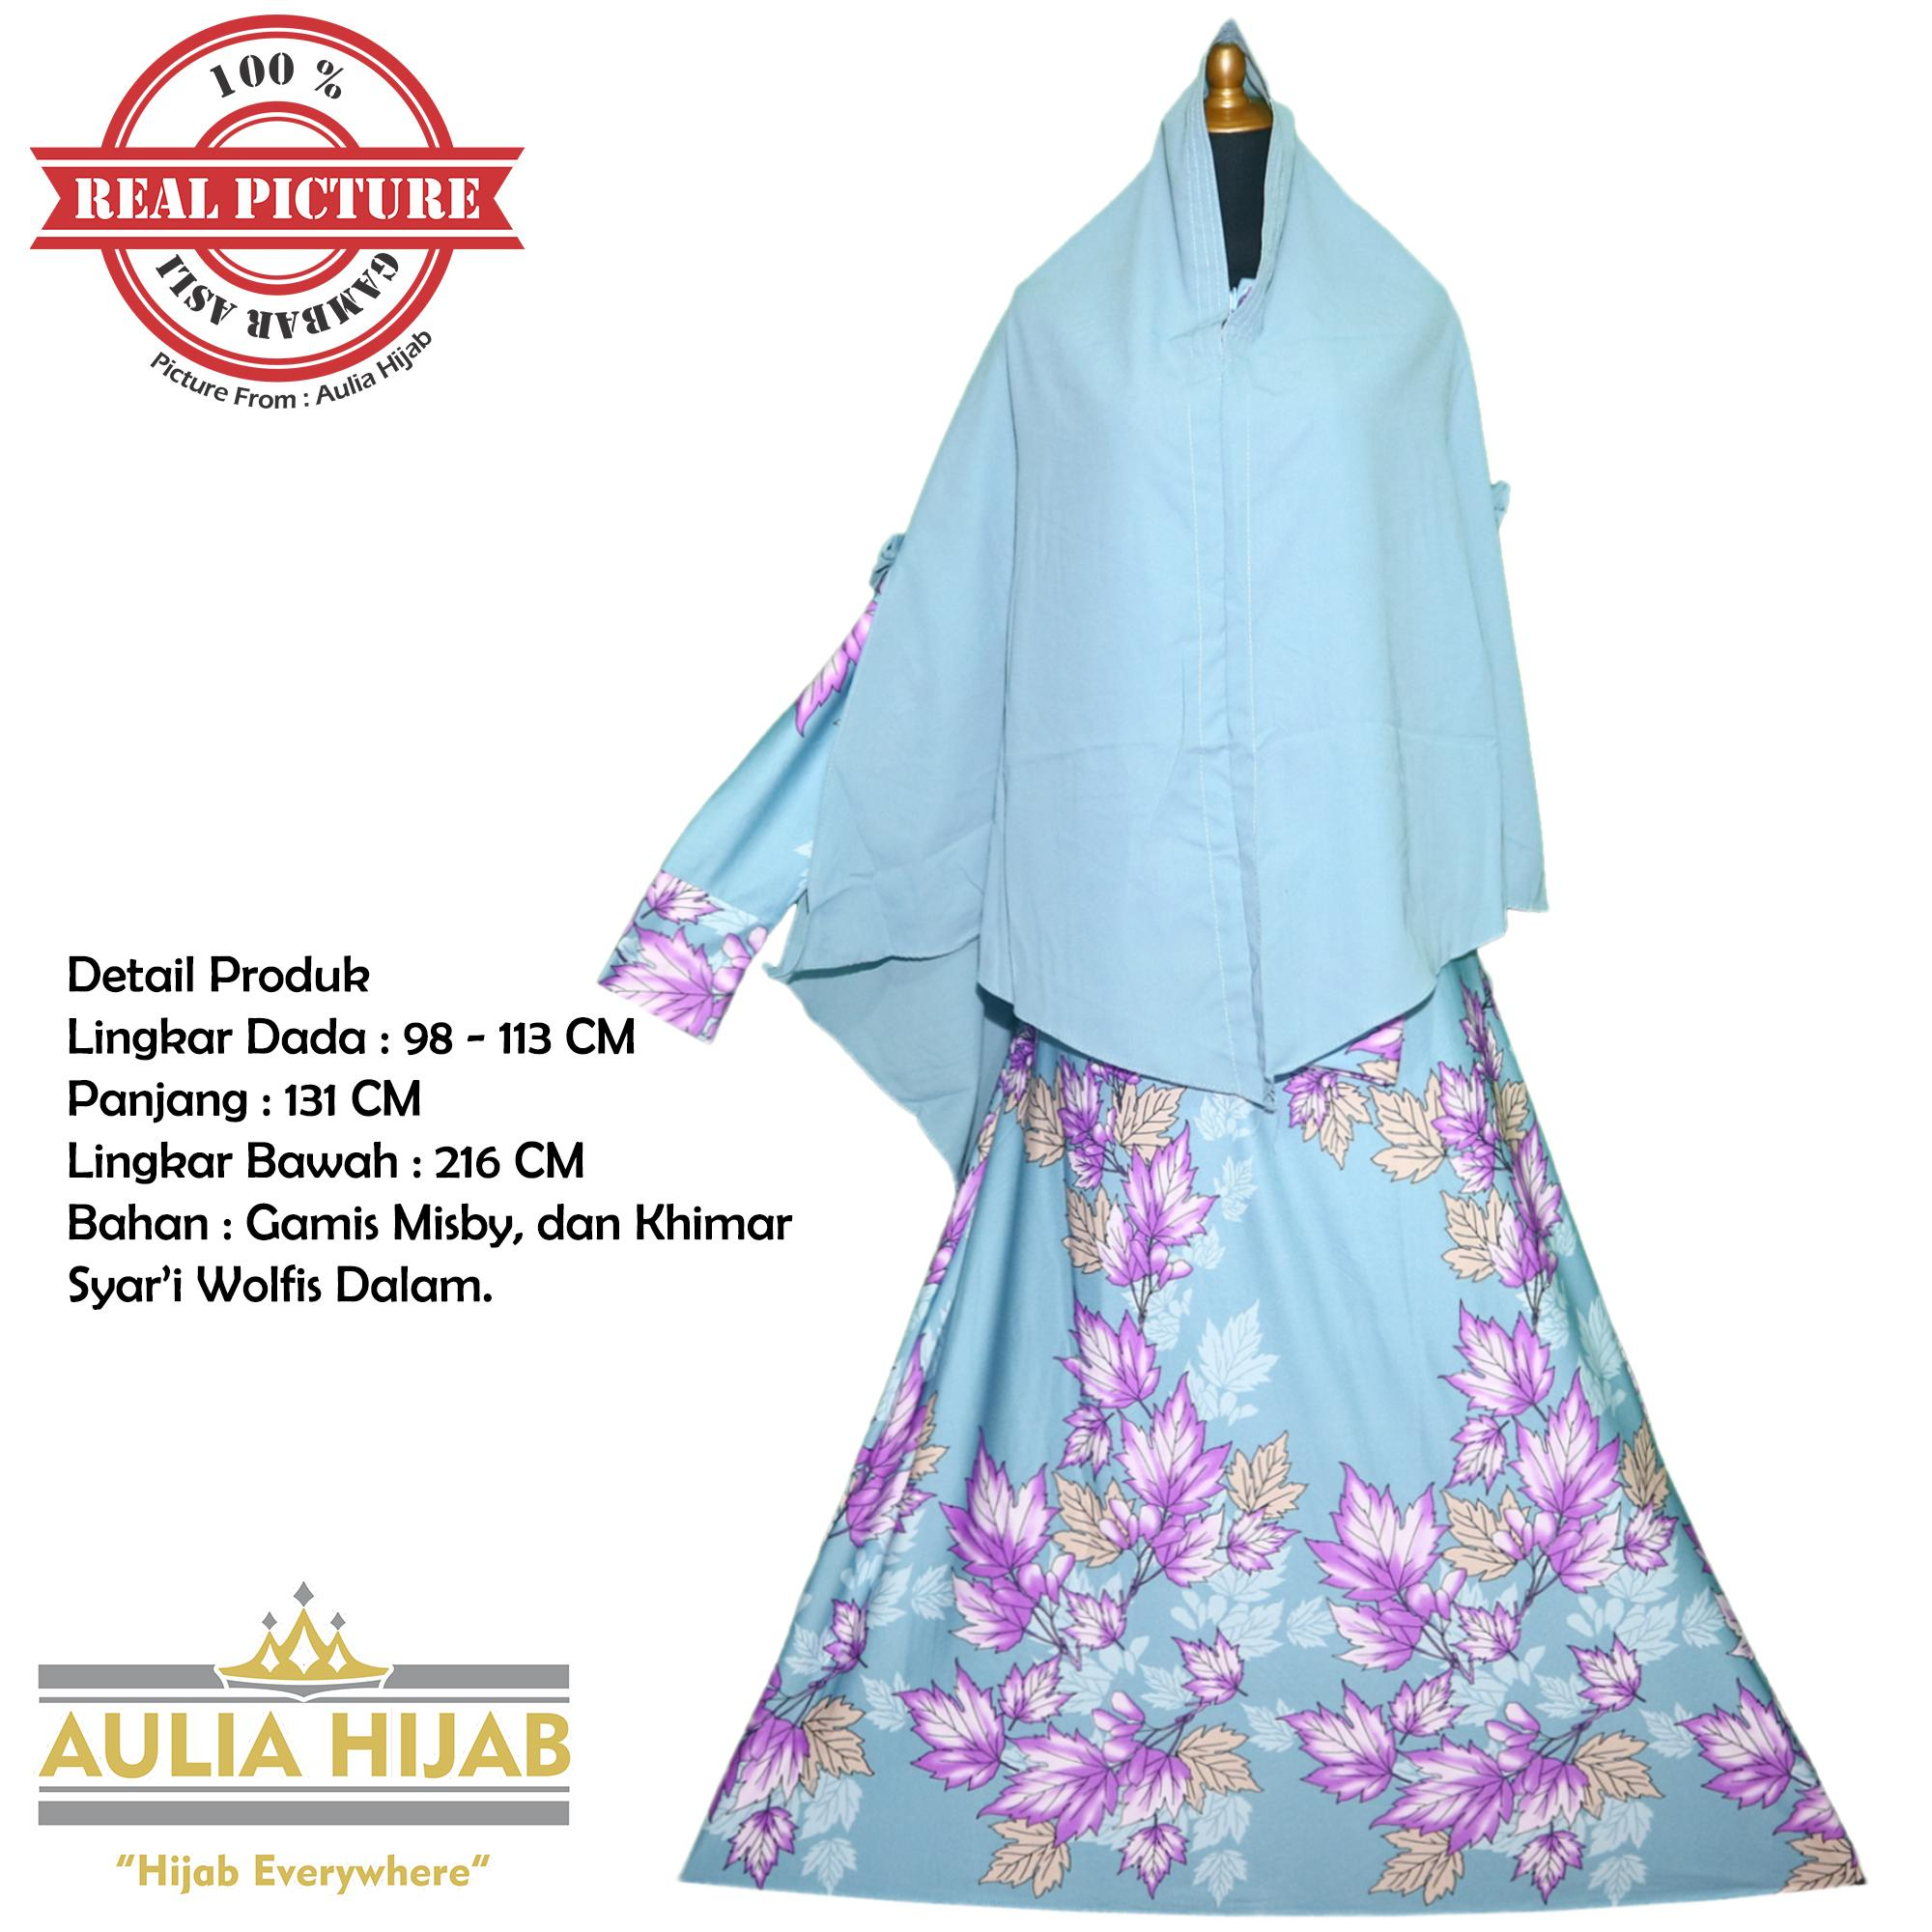 Features Aulia Hijab New Lyra Syar I Include Khimar Jumbo Gamis Syar